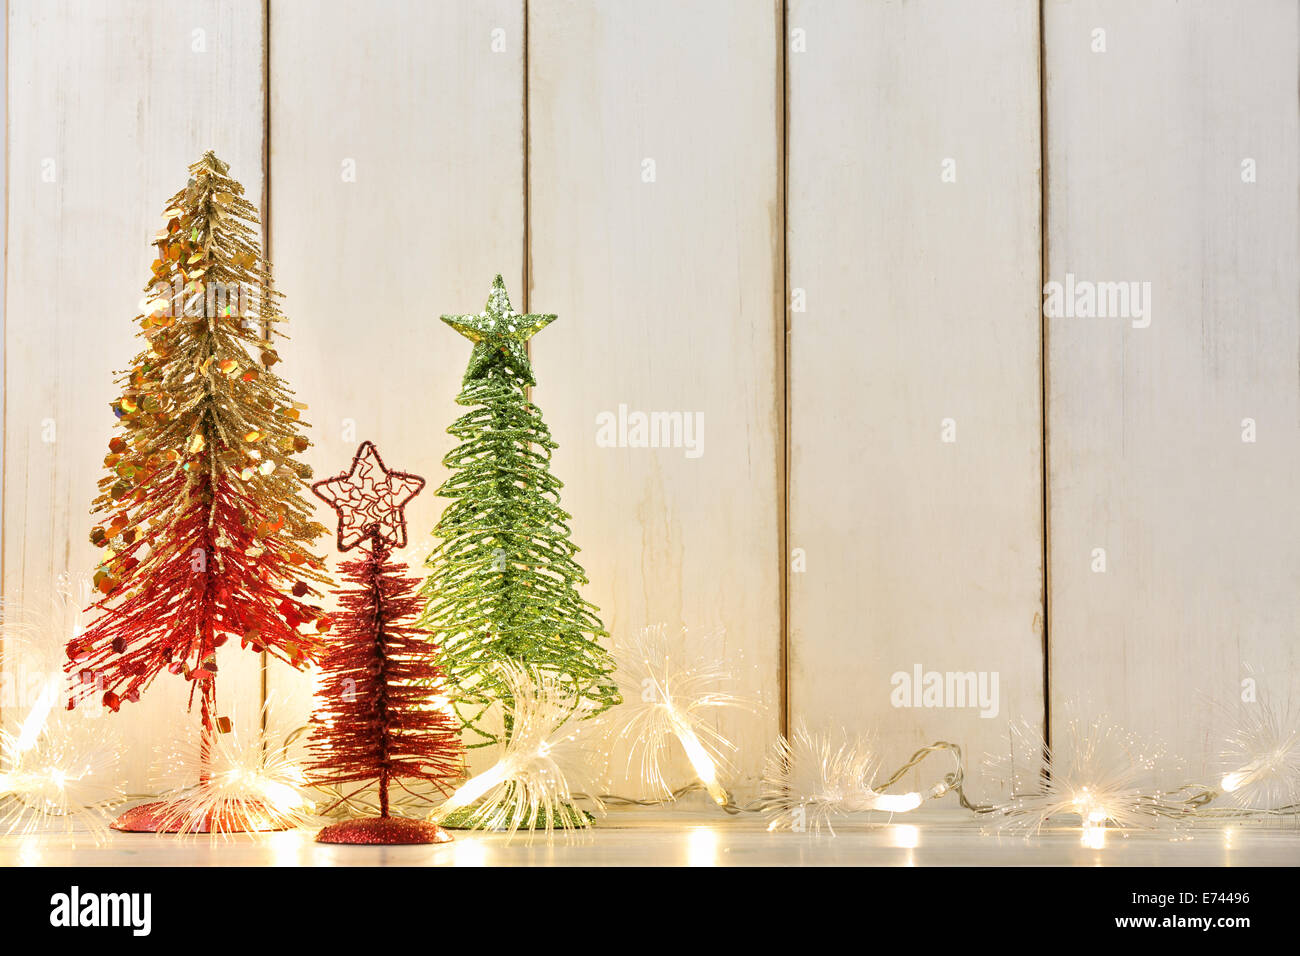 Toy Christmas Tree And Lights On Wood Background